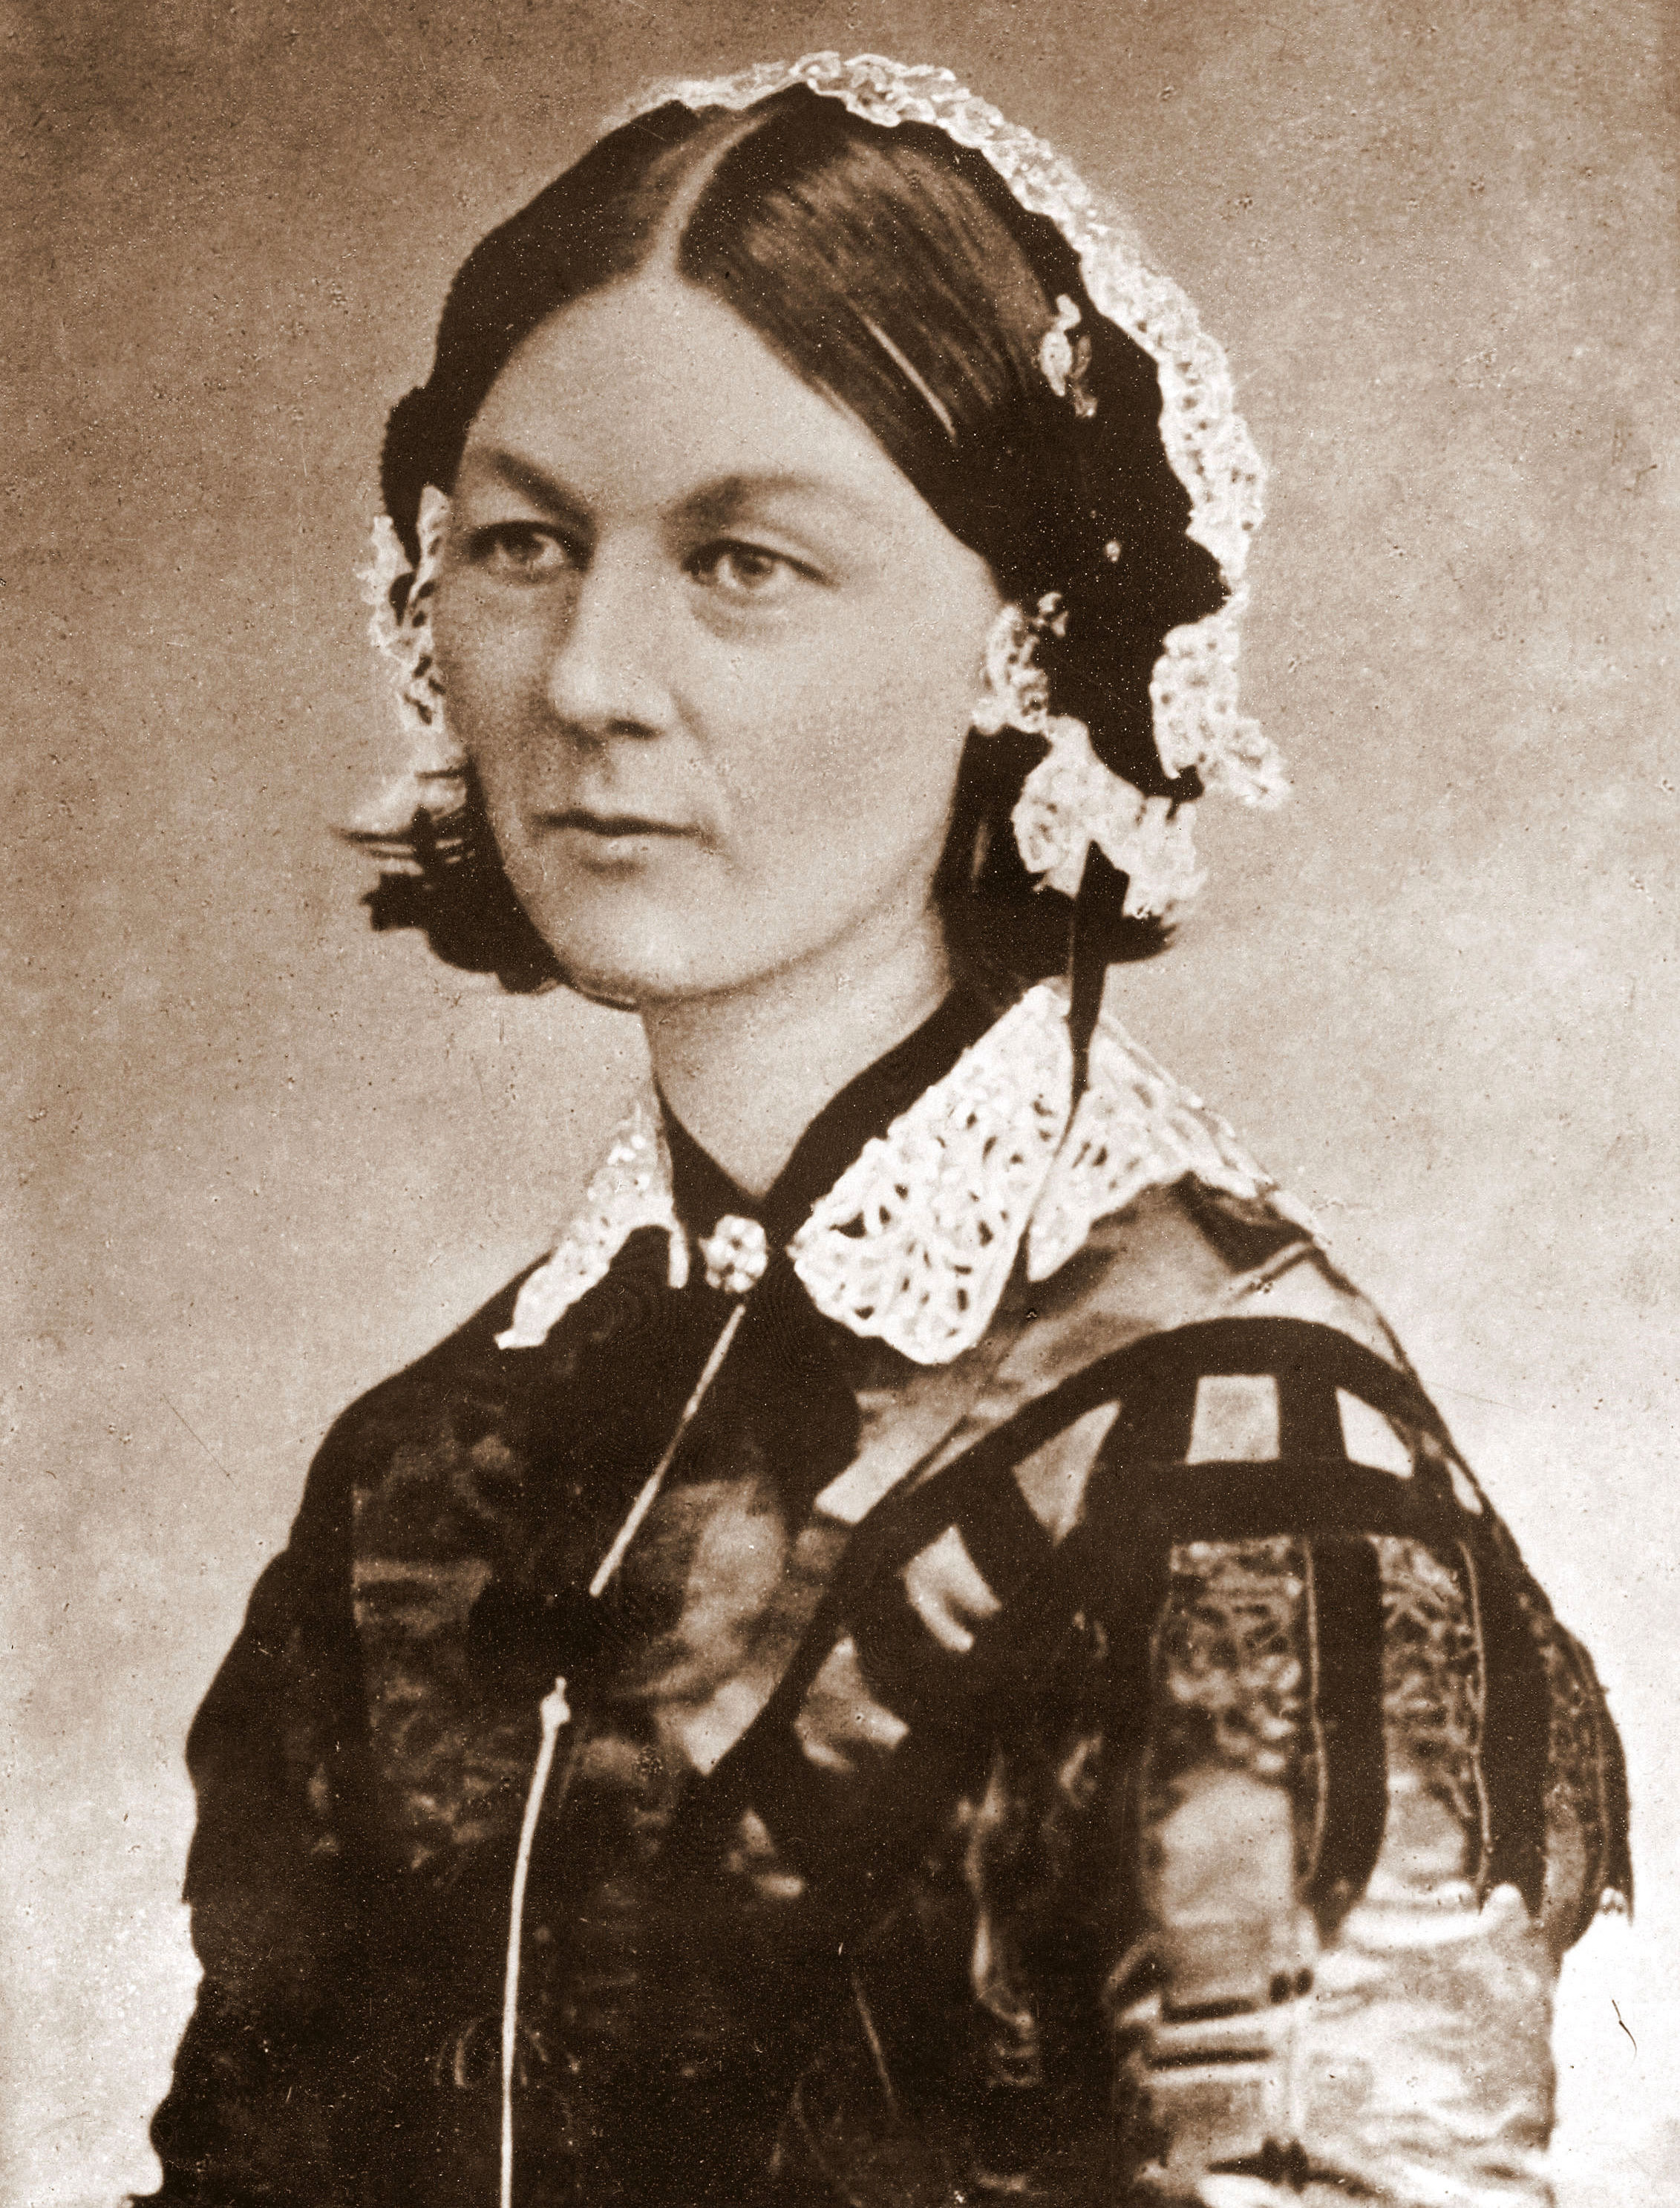 Florence_Nightingale_CDV_by_H_Lenthall.jpg